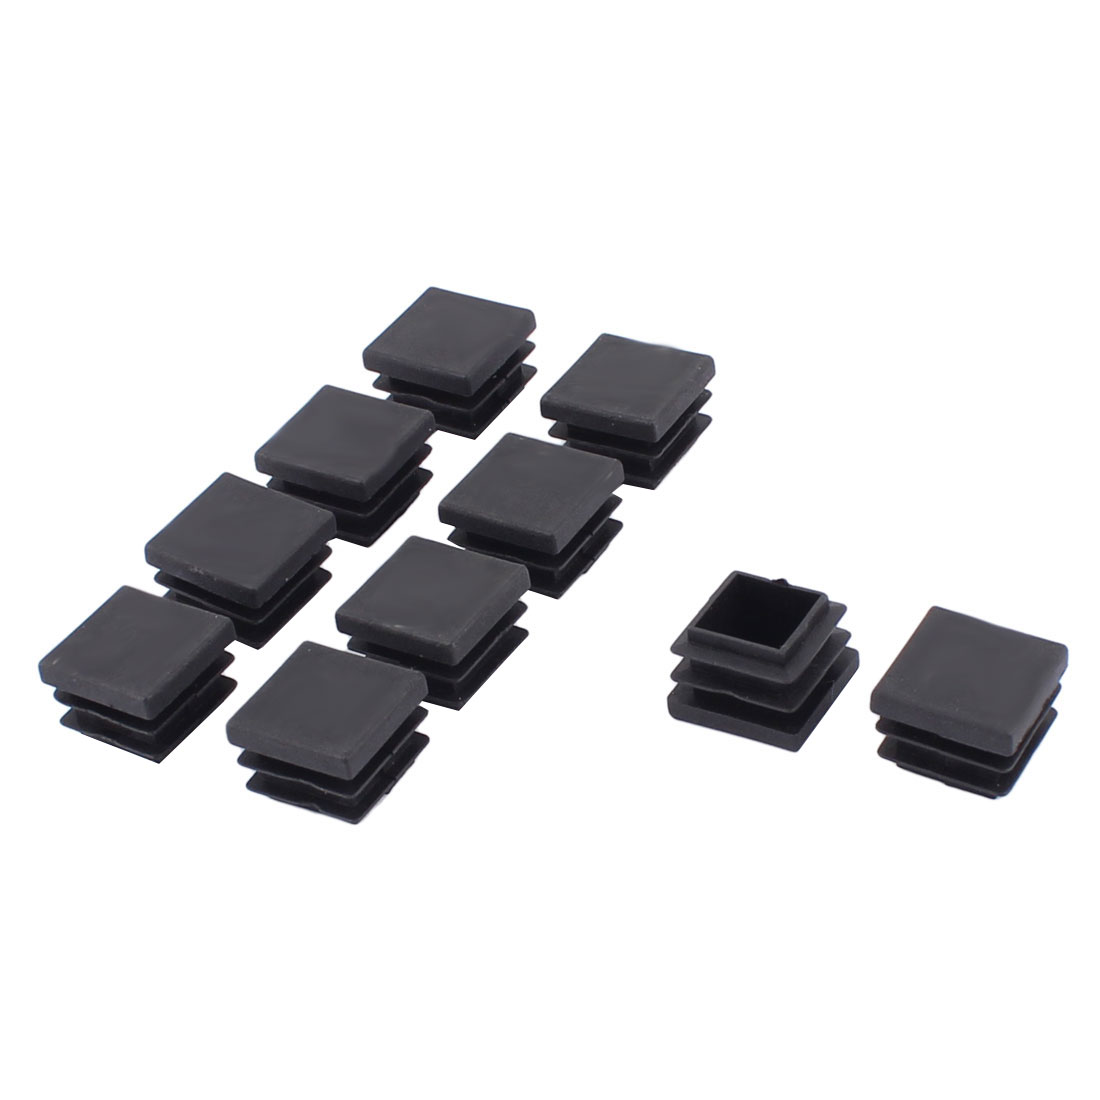 Furniture Table Chair Plastic Tubing Square Tube Pipe Inserts Caps Black 22mm x 22mm 10pcs